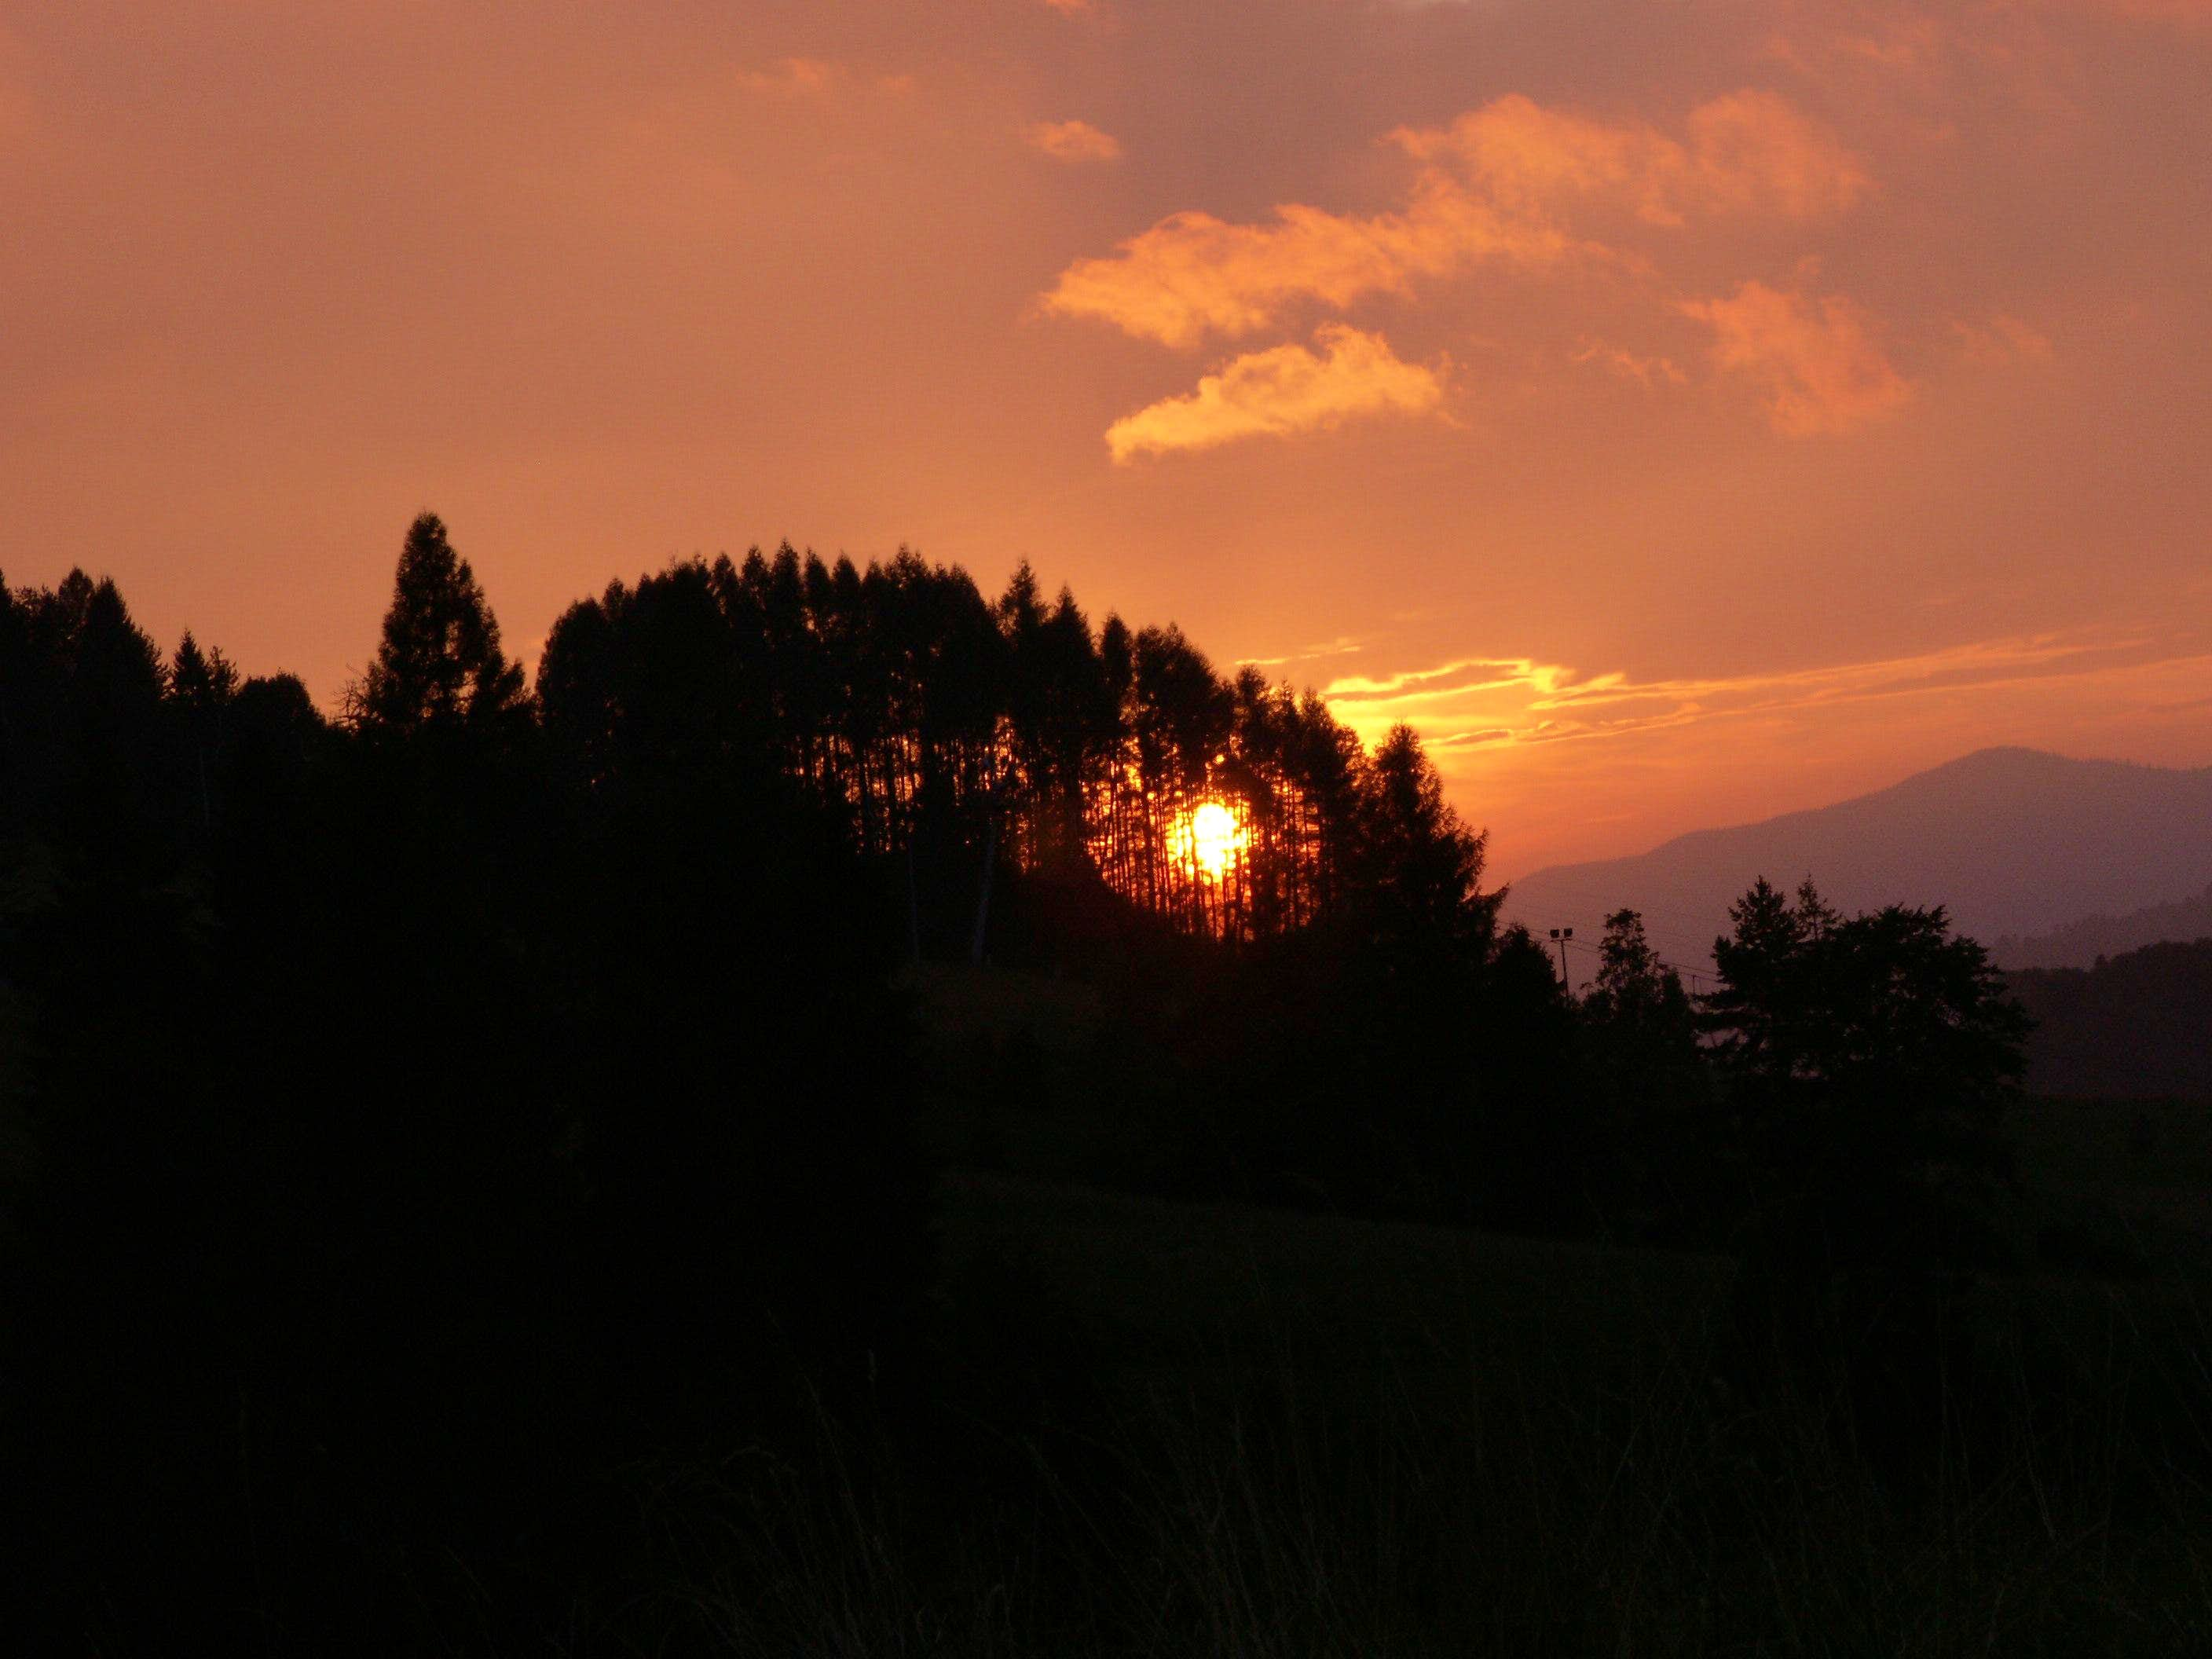 MY SUNSETS IN THE PIENINY MTS.